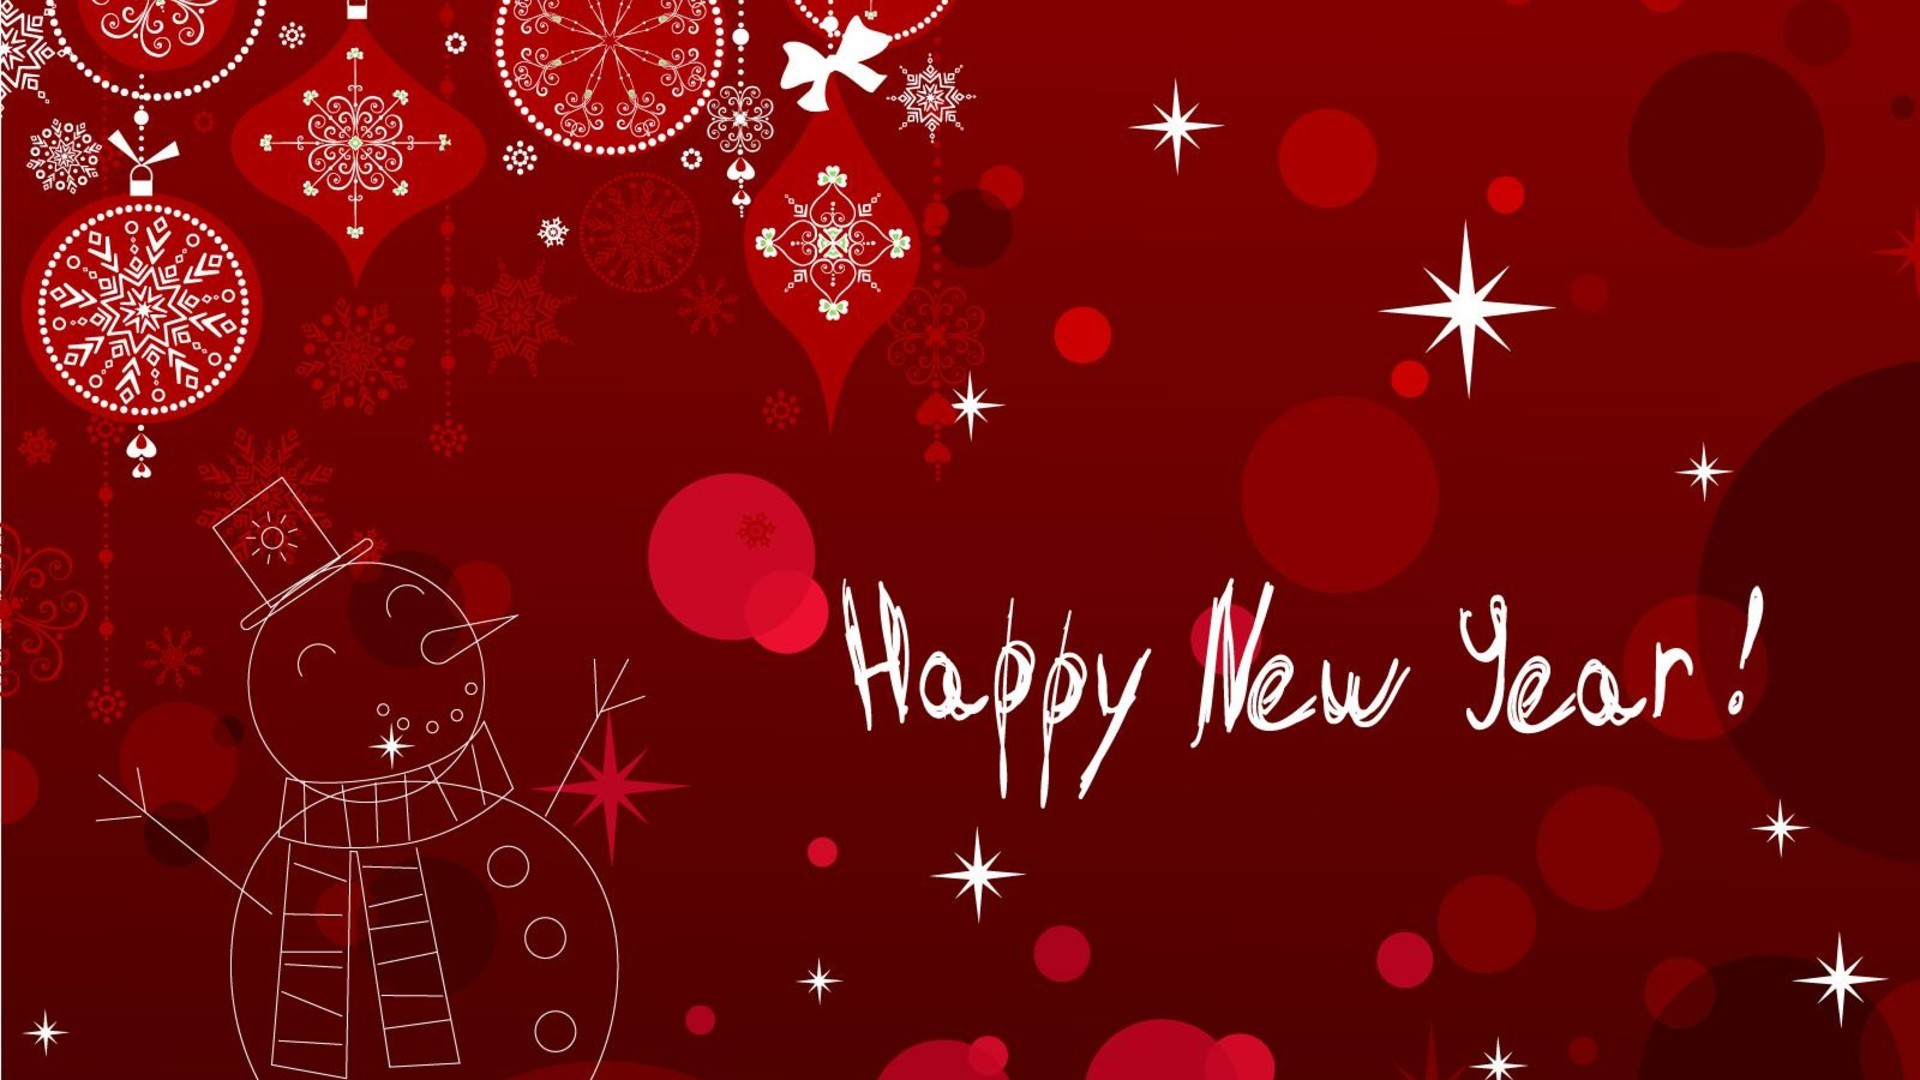 New year greetings wallpapers 2018 download m4hsunfo